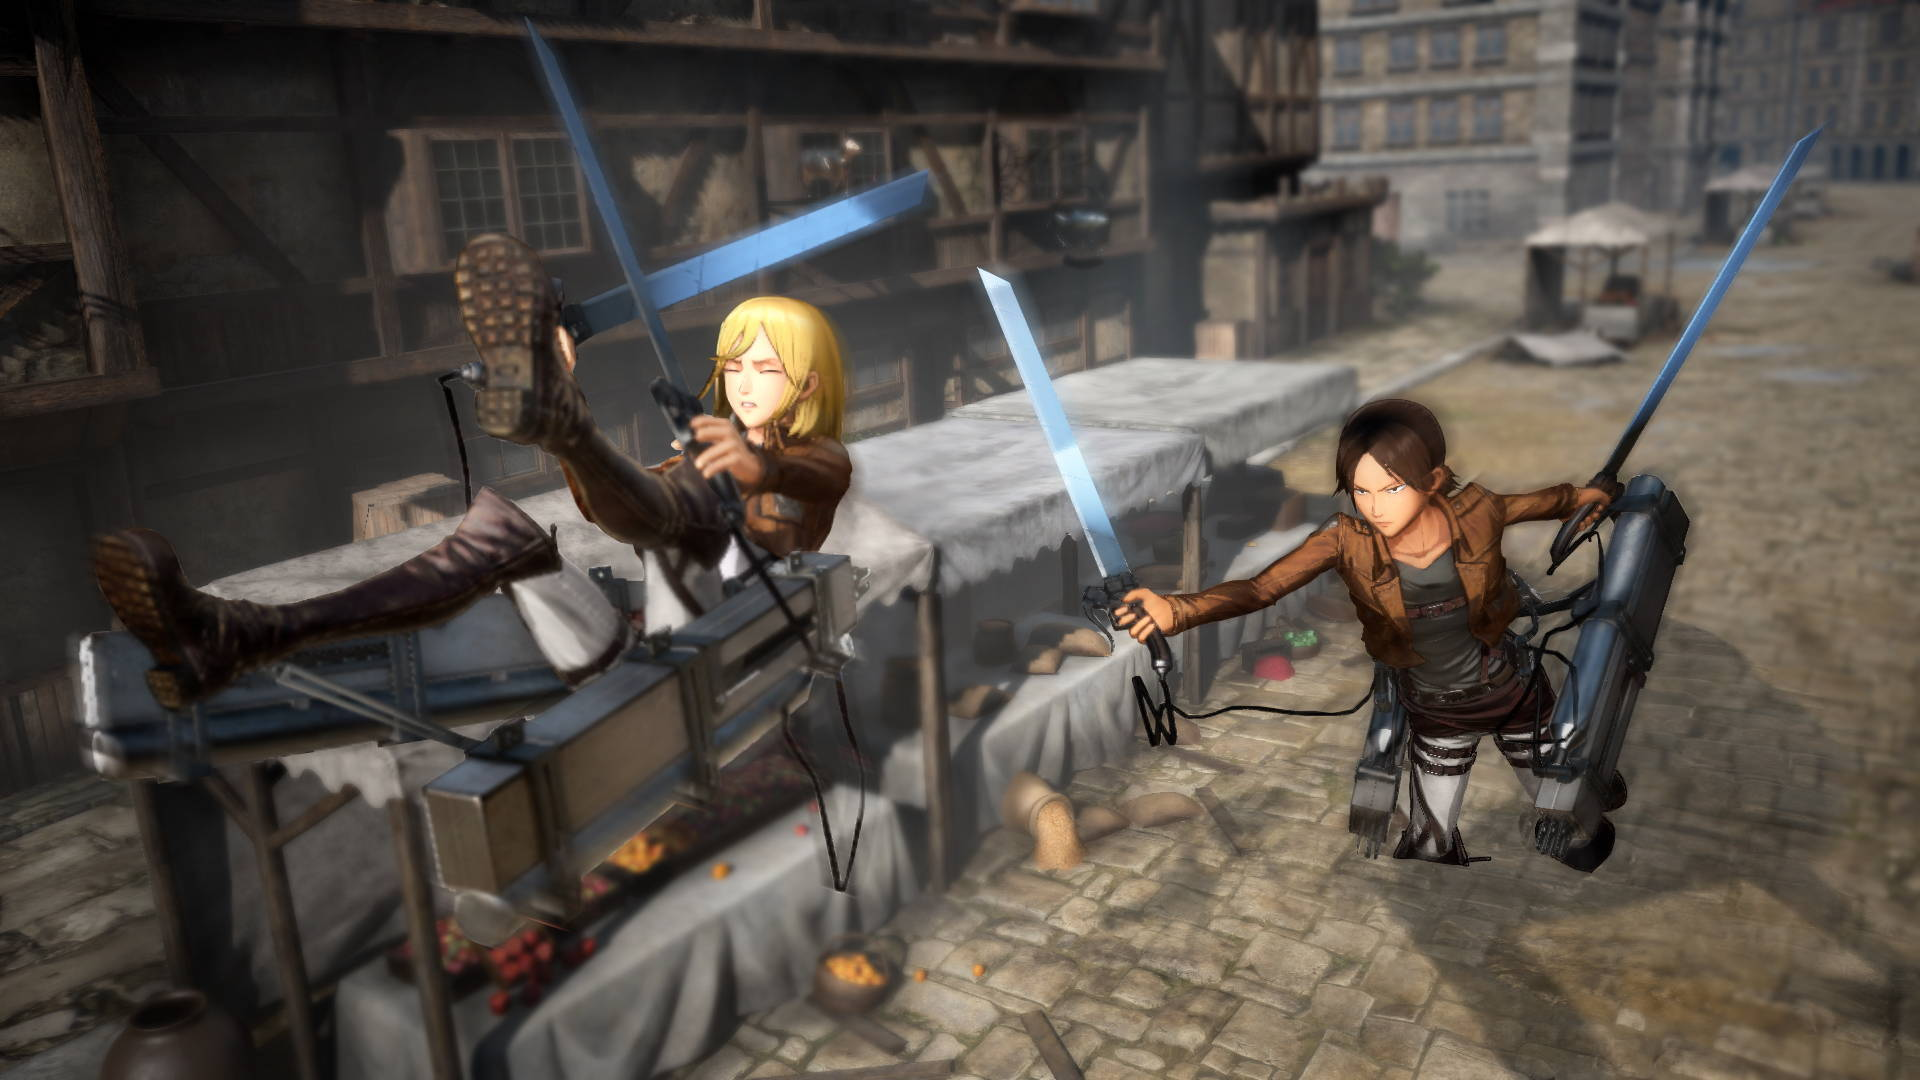 aot2_images4_0016